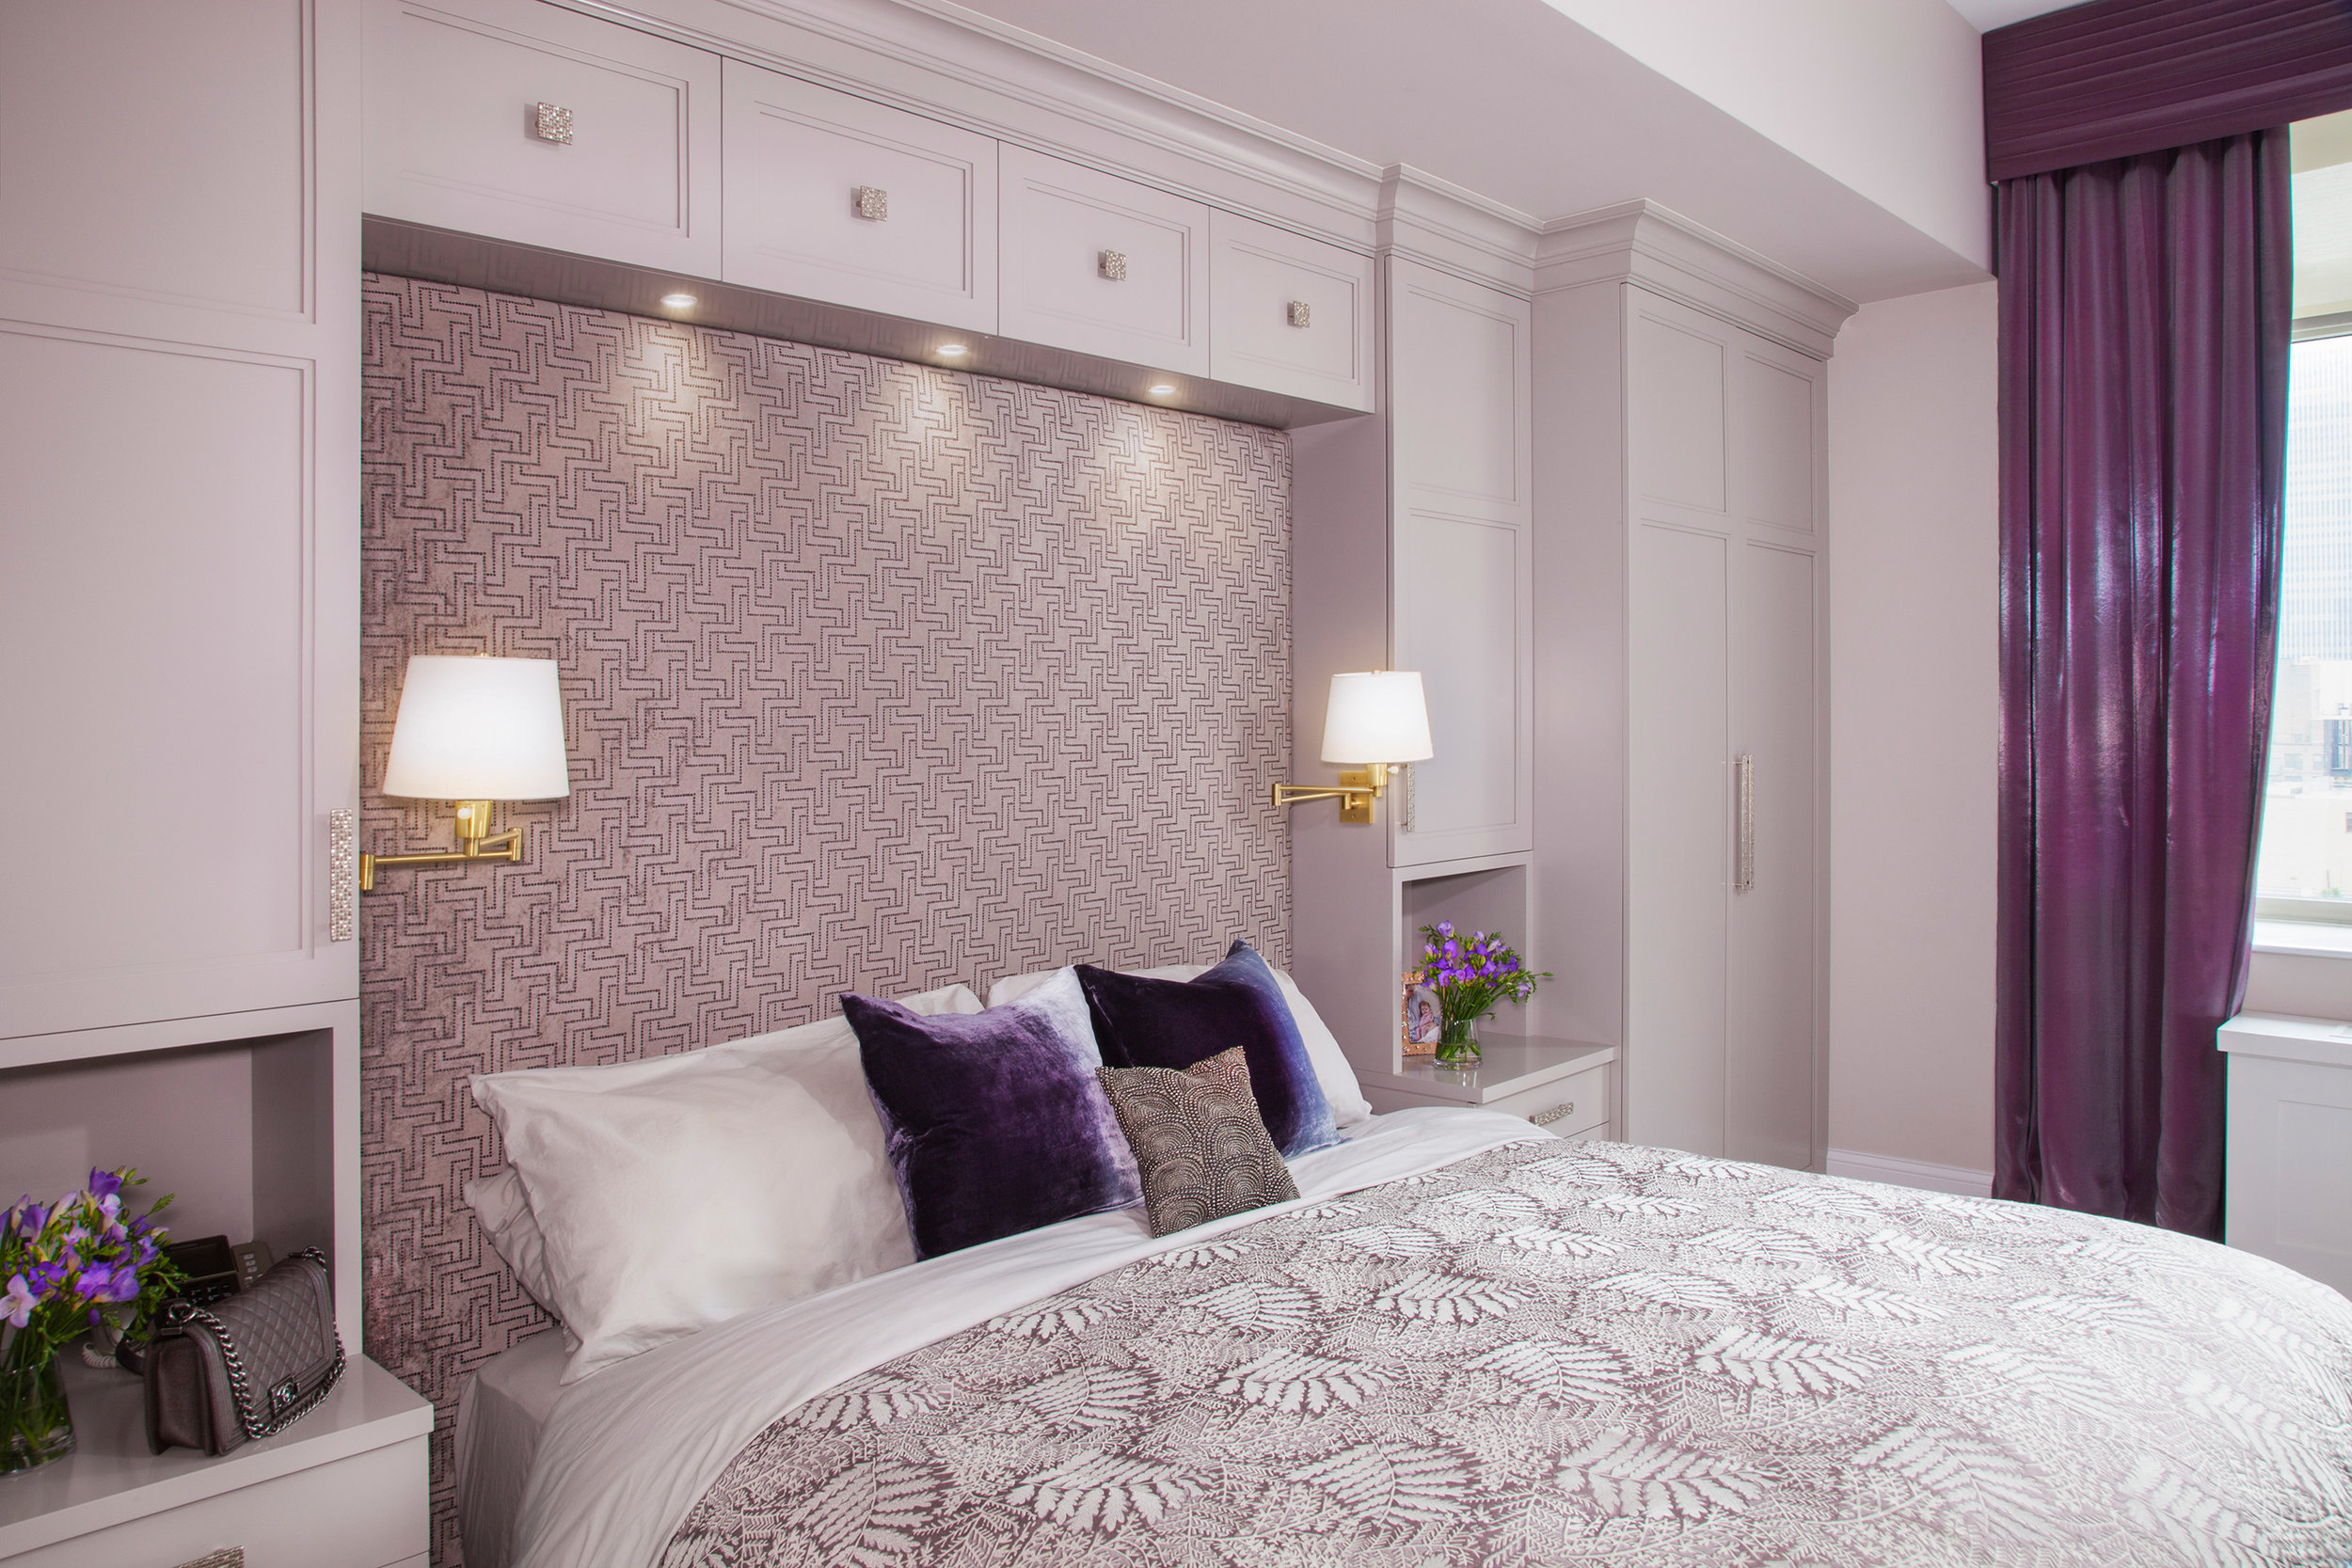 interior Design Photography in New York By Jonathan R. Bevkerman Design By Evelyn Benatar 7th Ave_Master Bedroom 01.jpg